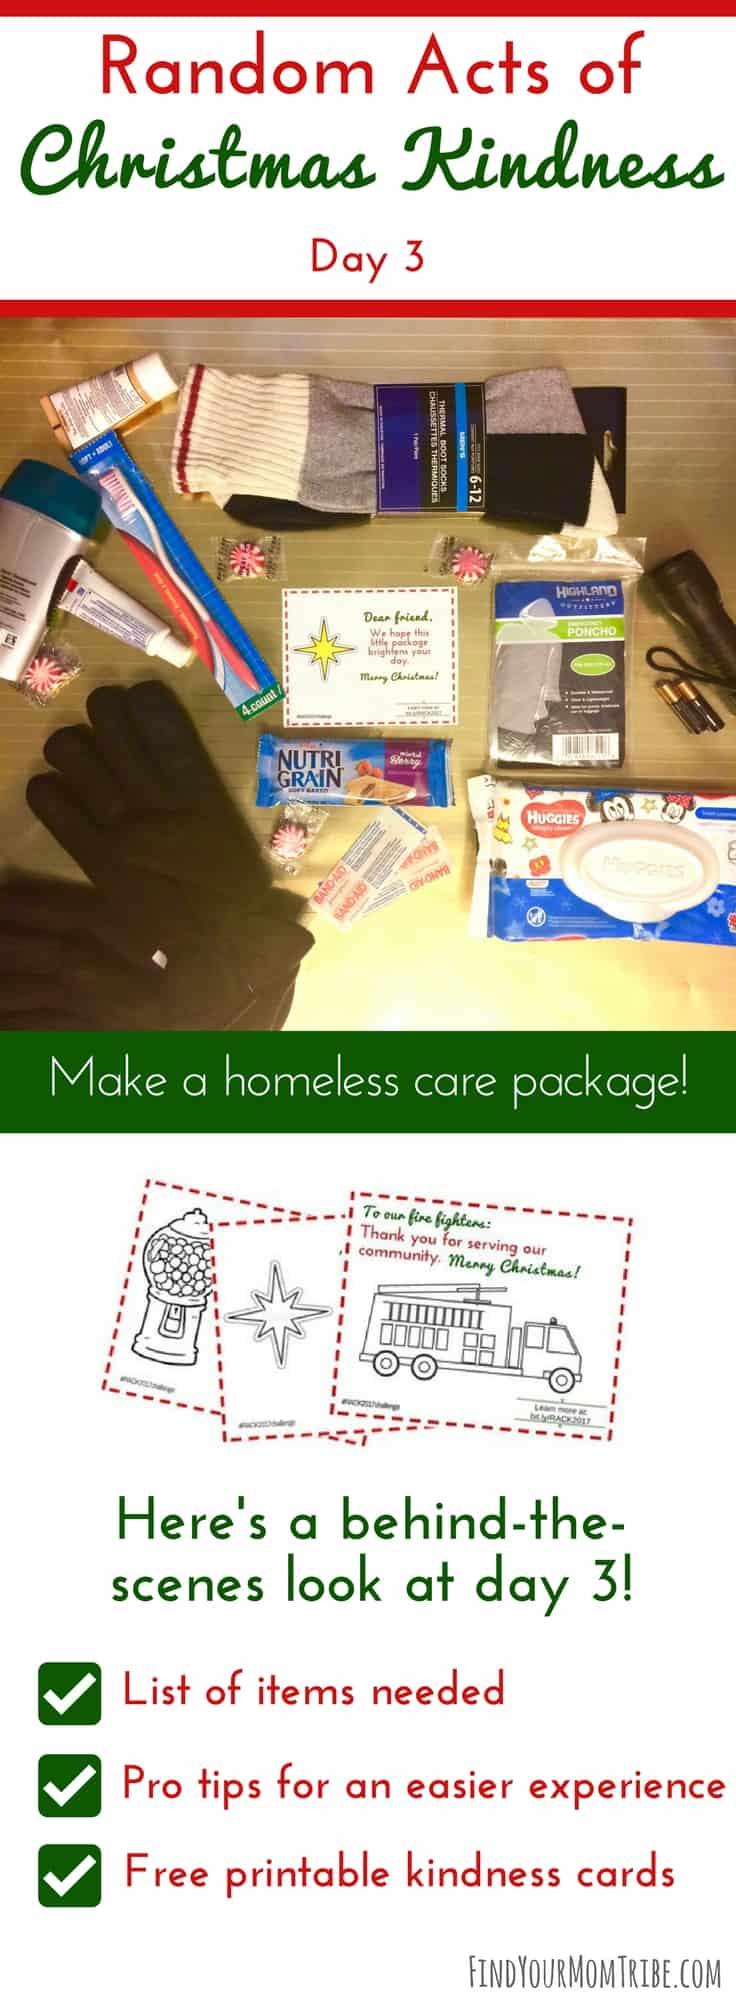 What a great idea! How to create a care package for the homeless. Join the Random Acts of Christmas Kindness challenge and grab your free printable kindness cards! #Christmas #MerryChristmas #blessothers #Christmas2017 #Christmasprintables #RandomActsofKindness #RandomActsofChristmasKindness #freekindnesscards #RACK #ROAK